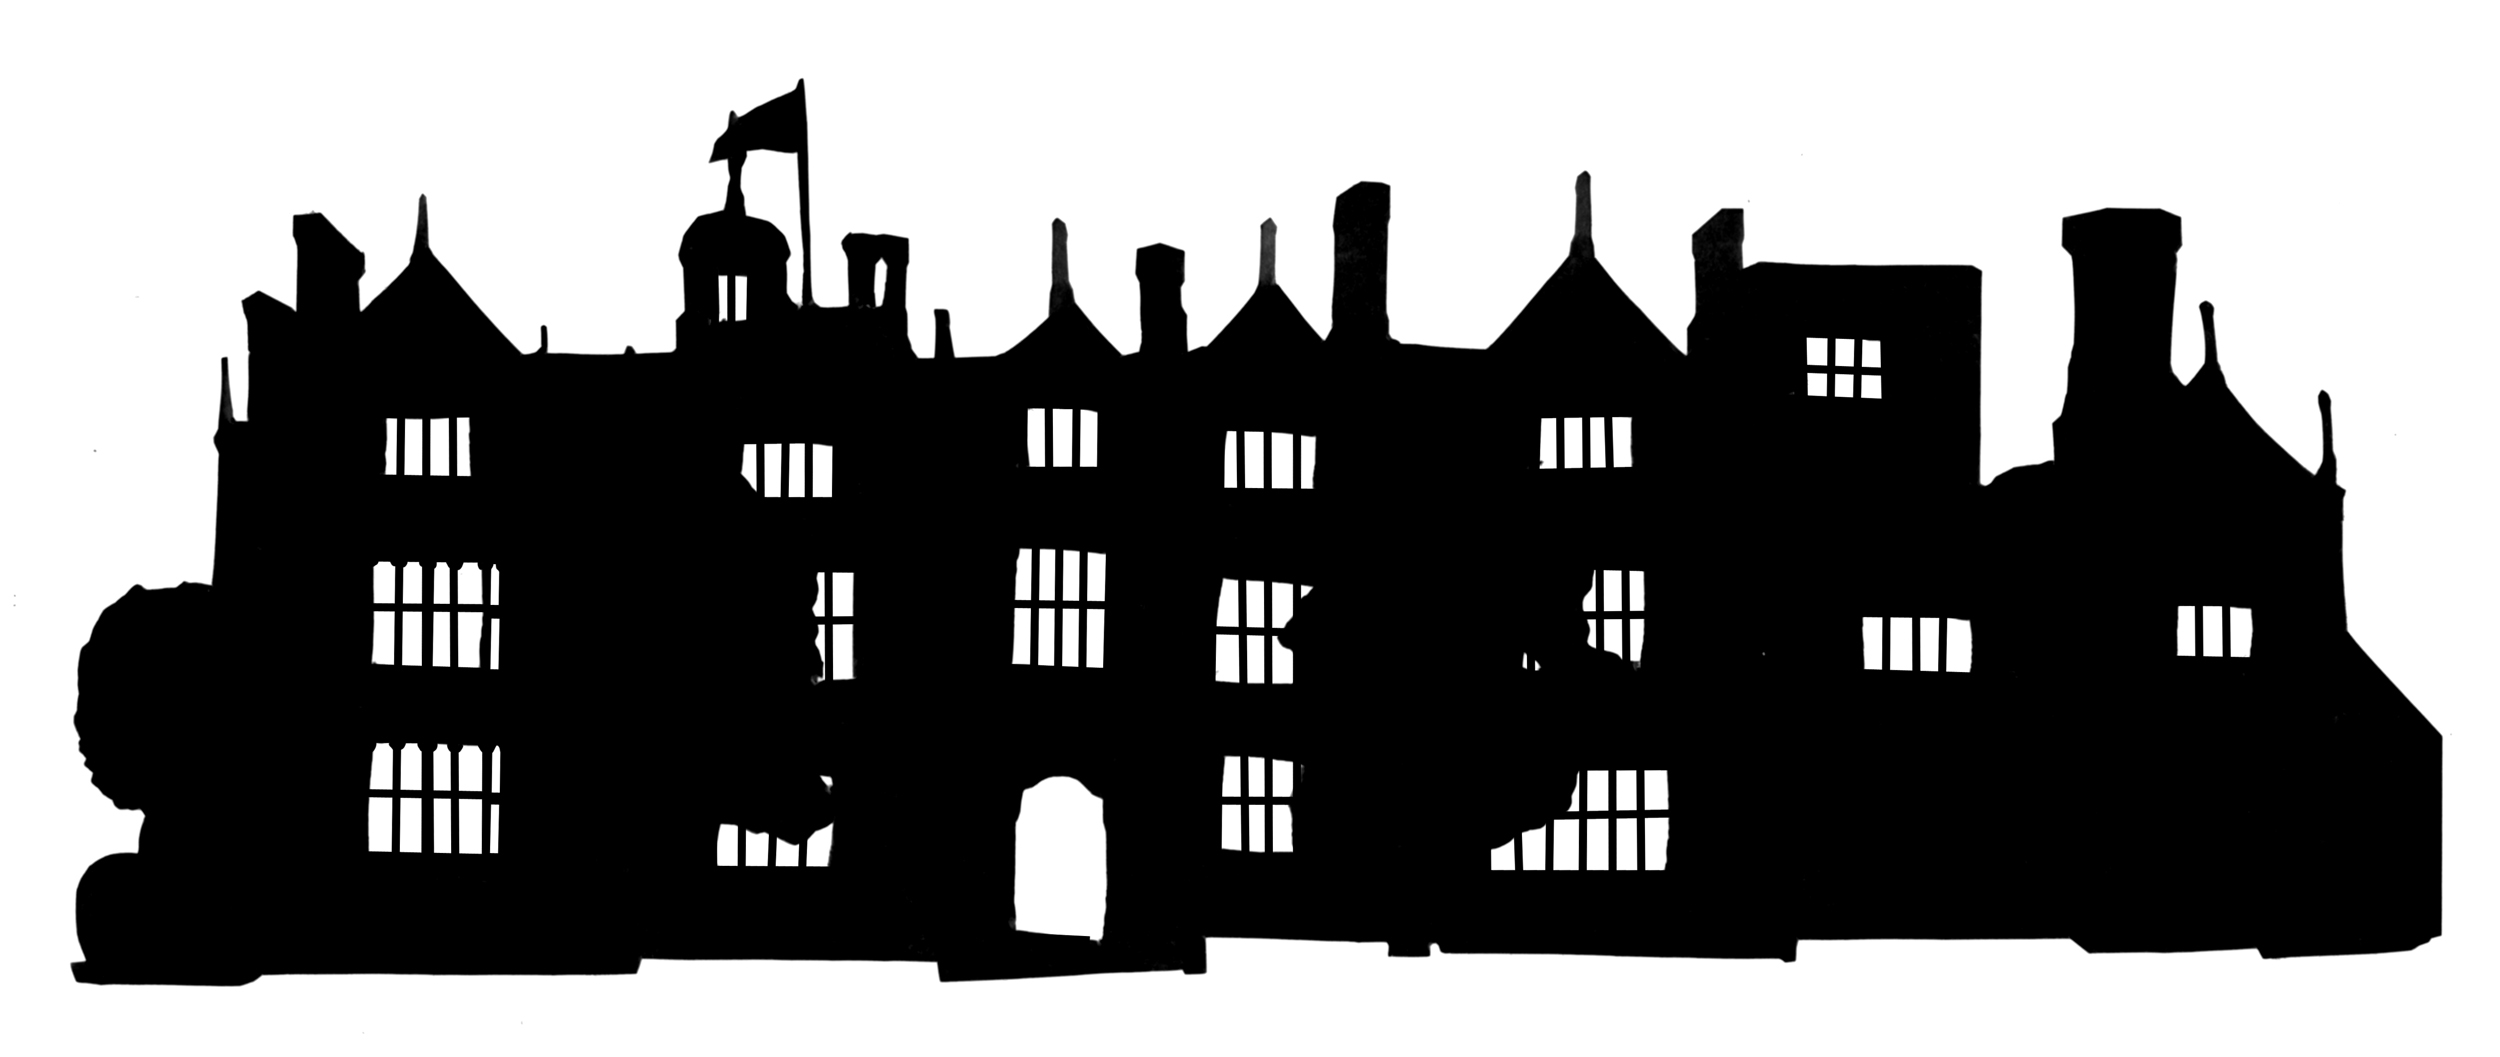 Mixed Media Silhouettes Of Buildings The Roving Artist